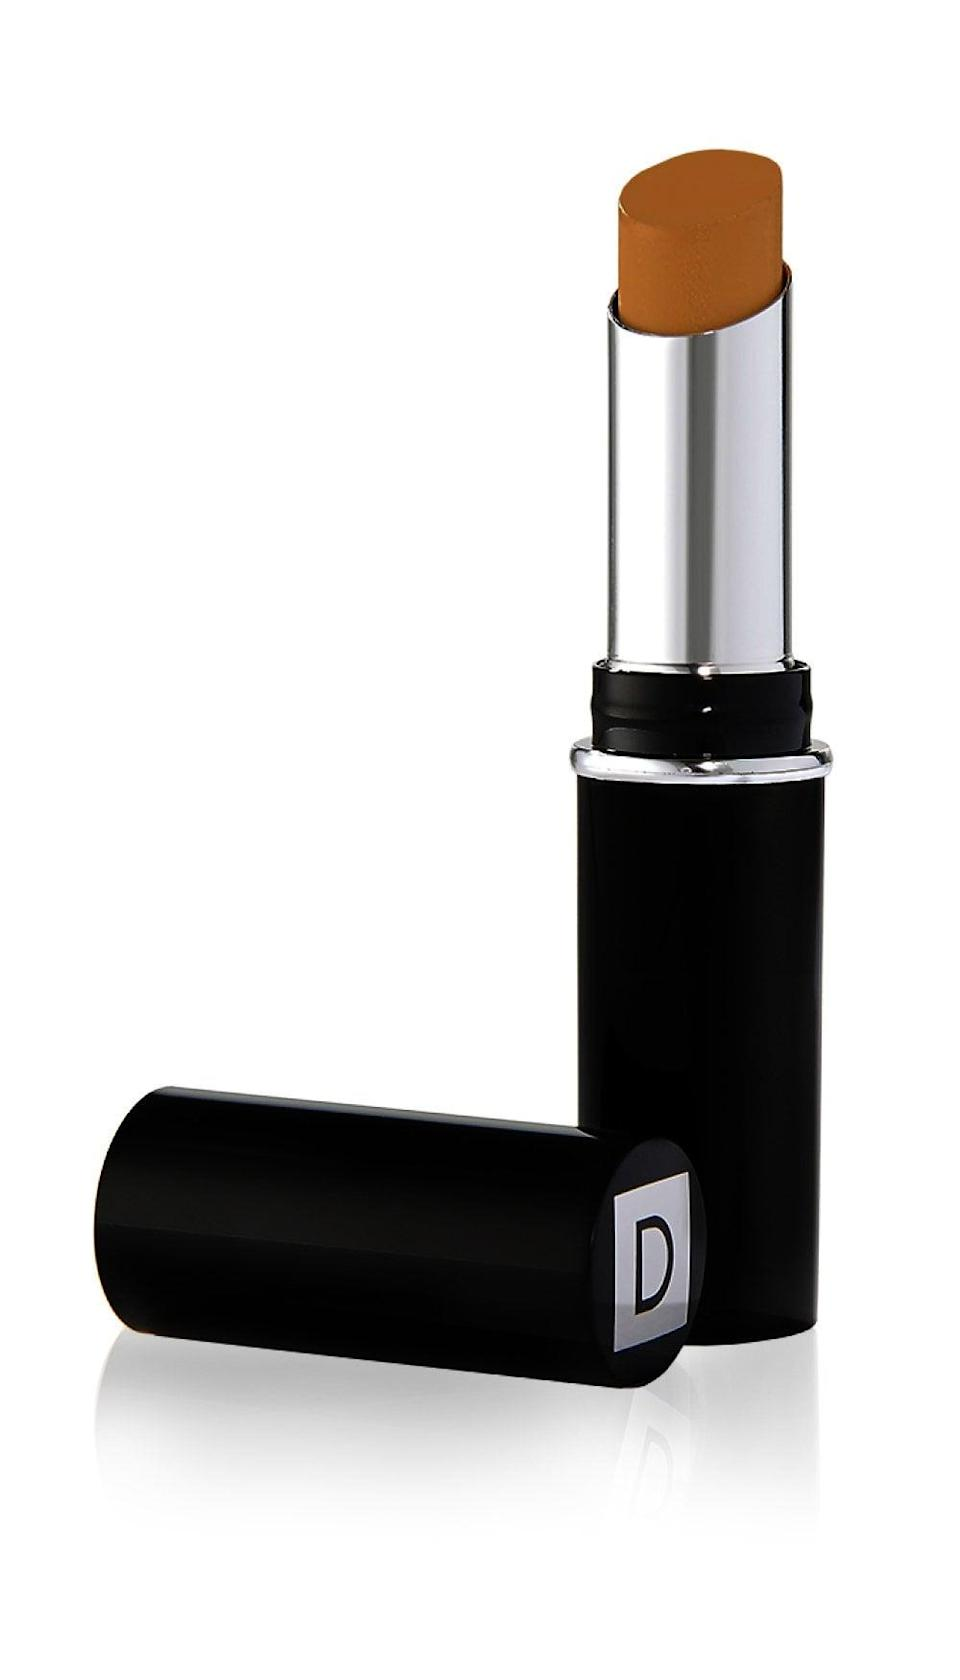 """<p><span>Dermablend Quick-Fix Full Coverage Concealer</span> ($26) is formulated with broad spectrum SPF 30 and a natural finish.</p> <p><strong>Customer Review:</strong> """"If you have scars or freckles, this is the best product I have ever used. It lasts 24 hours. It doesn't come off when you sweat. I actually learned about this product from a male friend in the entertainment industry. He wears it anytime he is recording a video or has to make a public appearance. It's great for dark circles or blemishes as well."""" </p>"""